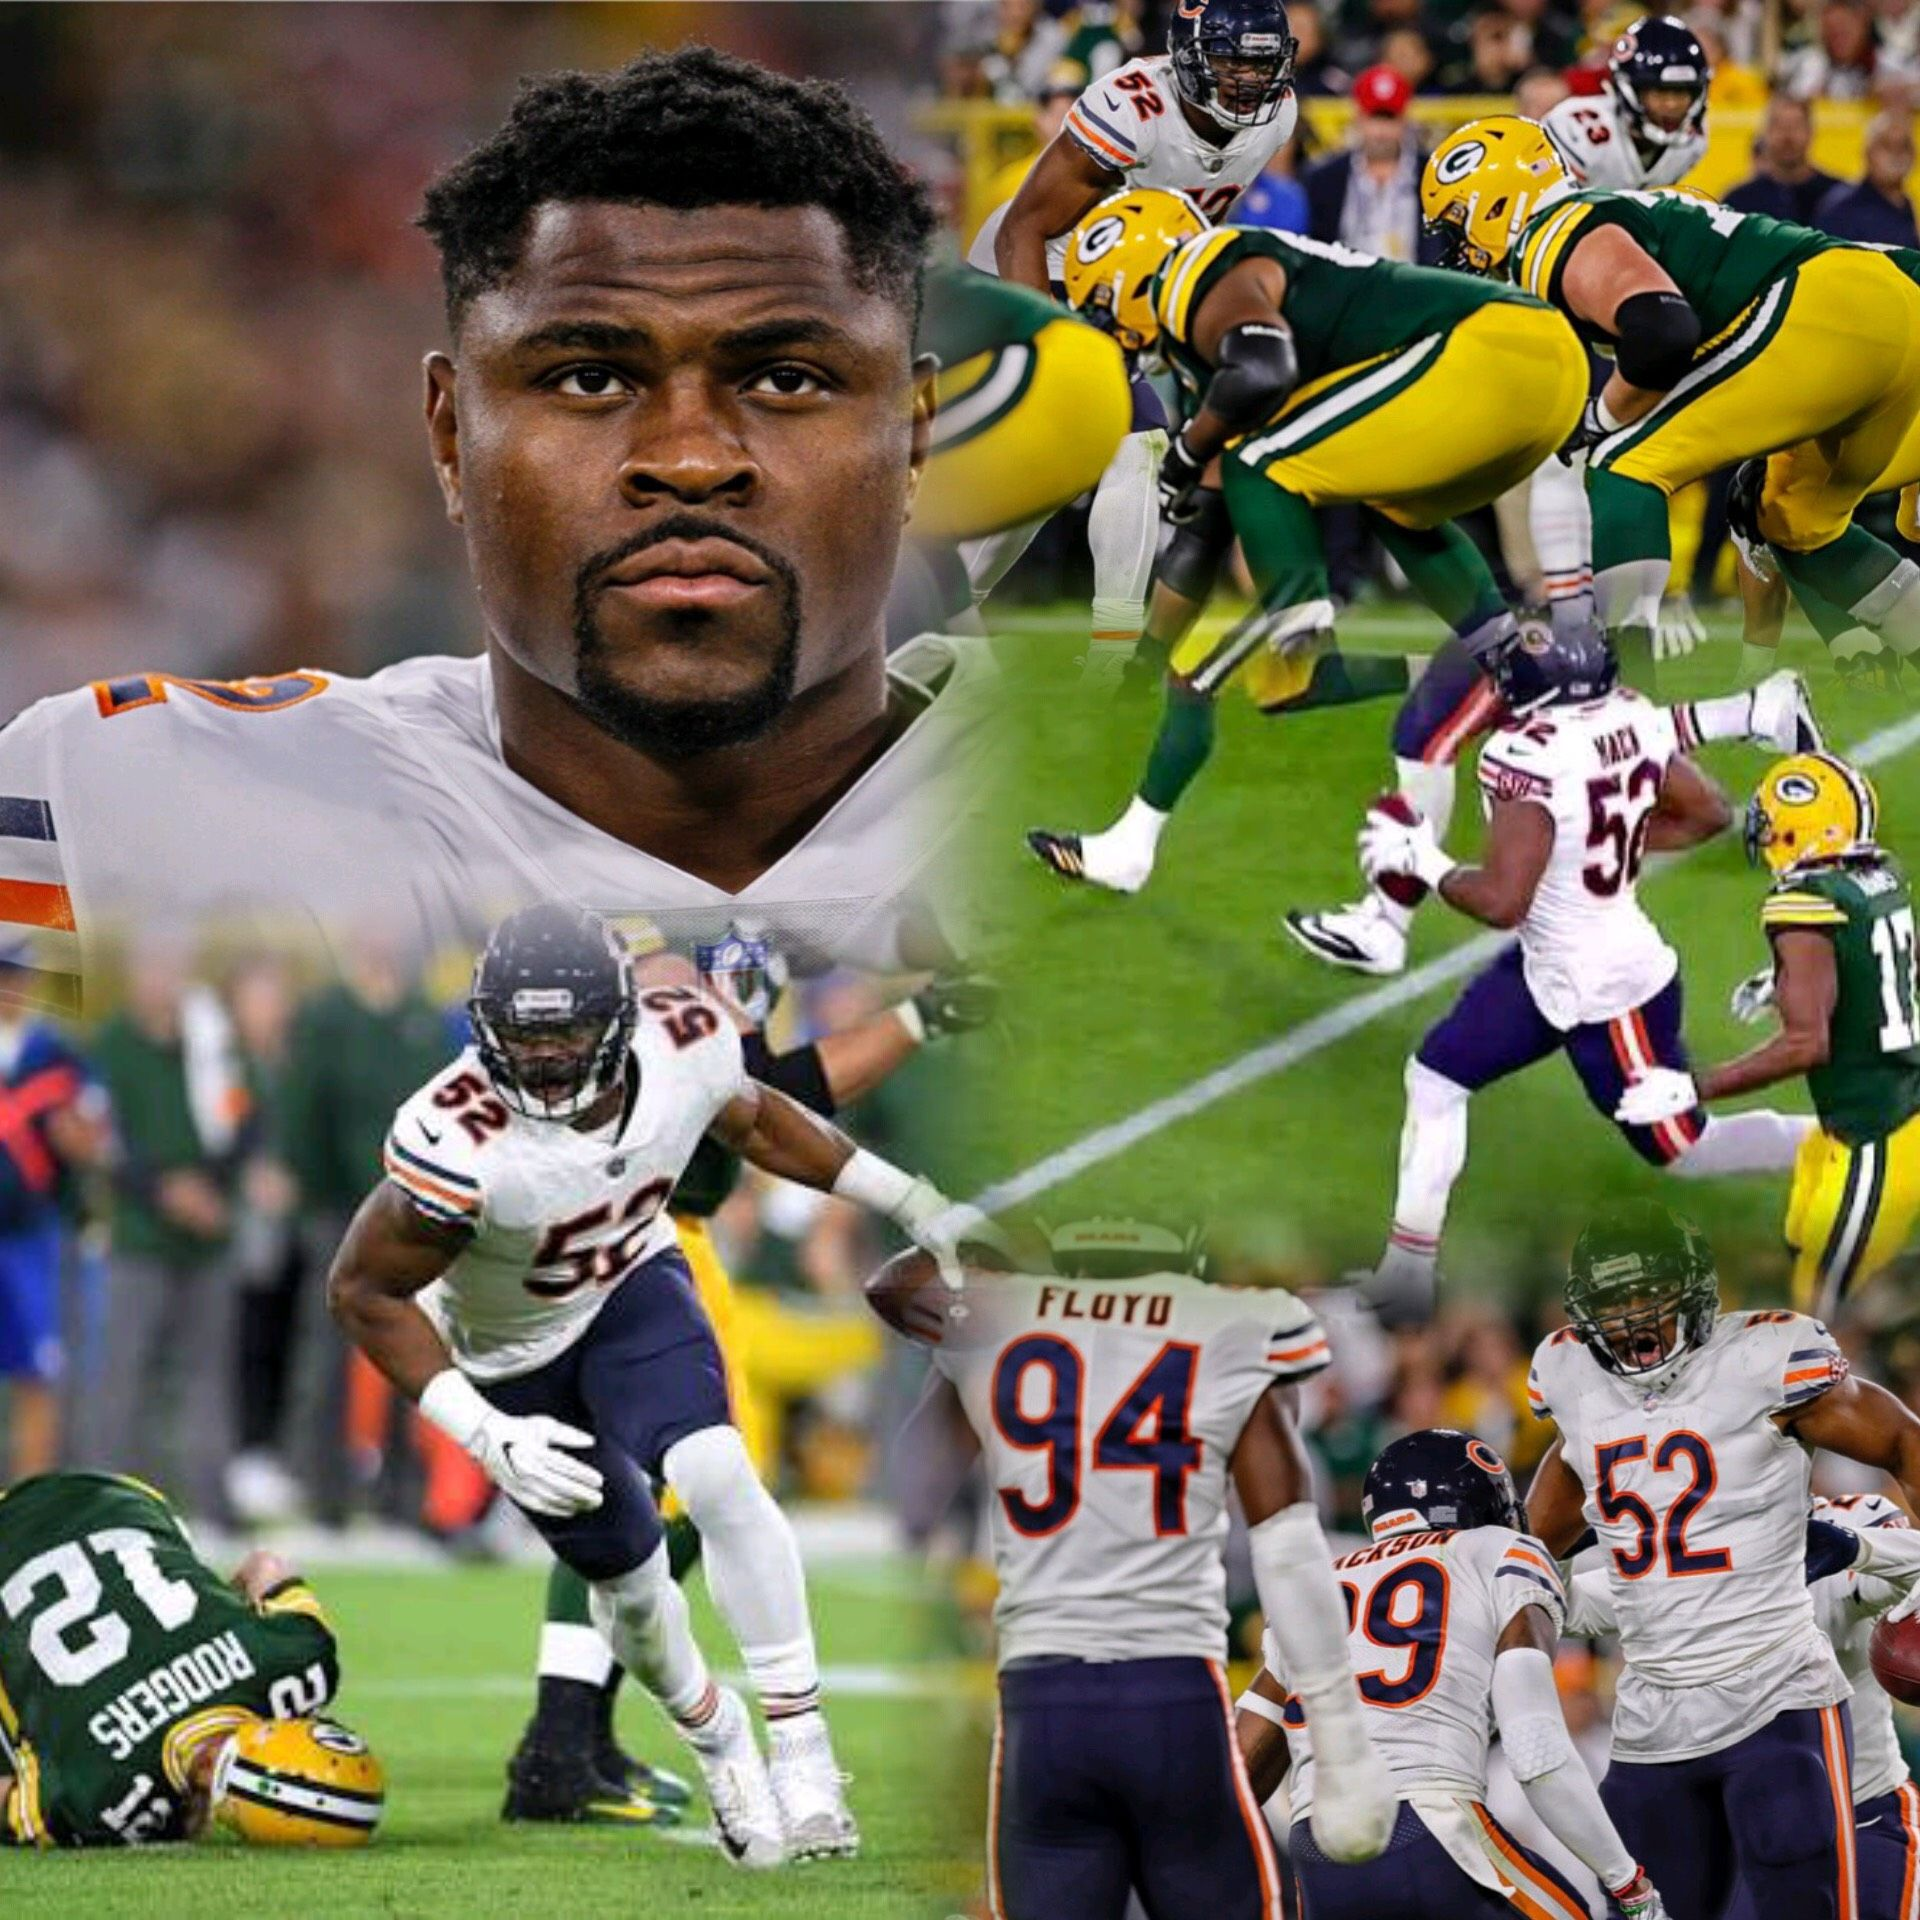 Khalil Mack 52 In The First Game For Chicago Bears Became The First Nfl Player Since Giants Star Lawren Chicago Bears Football Bears Football Chicago Bears